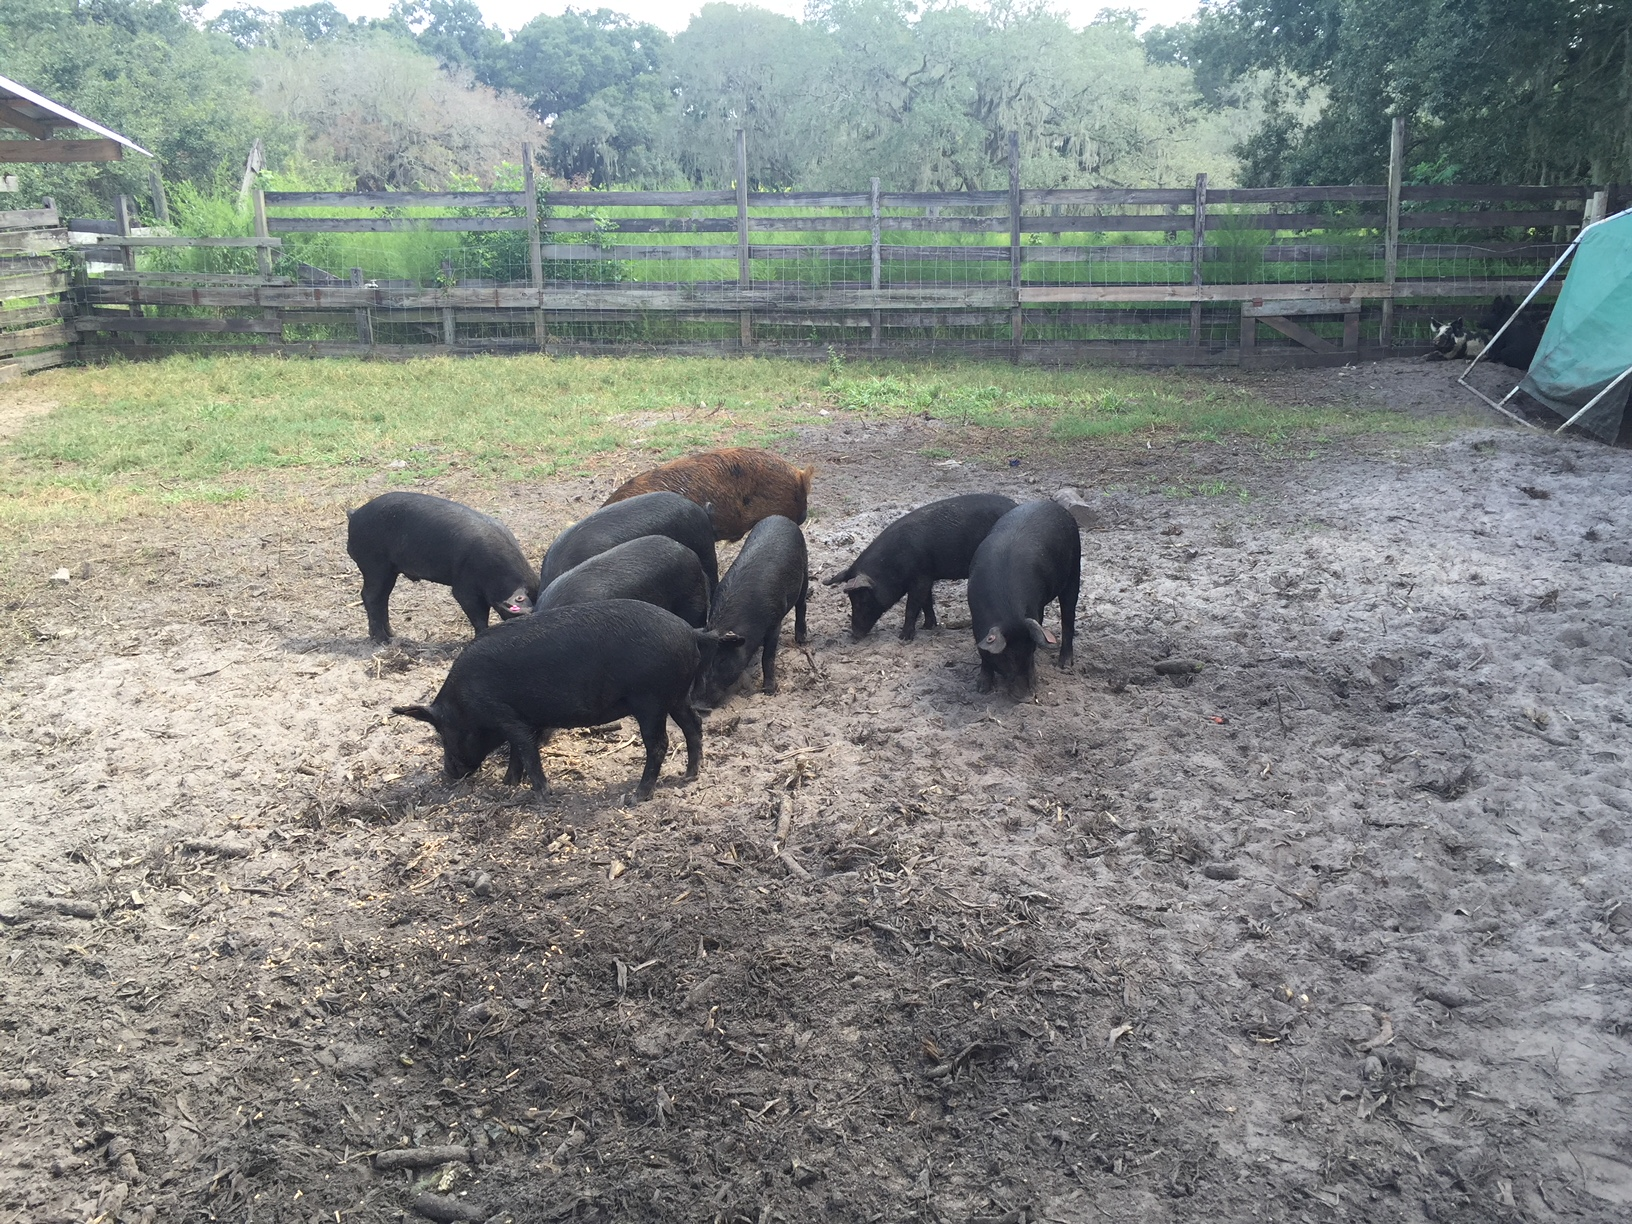 Shogun Farms Hogs